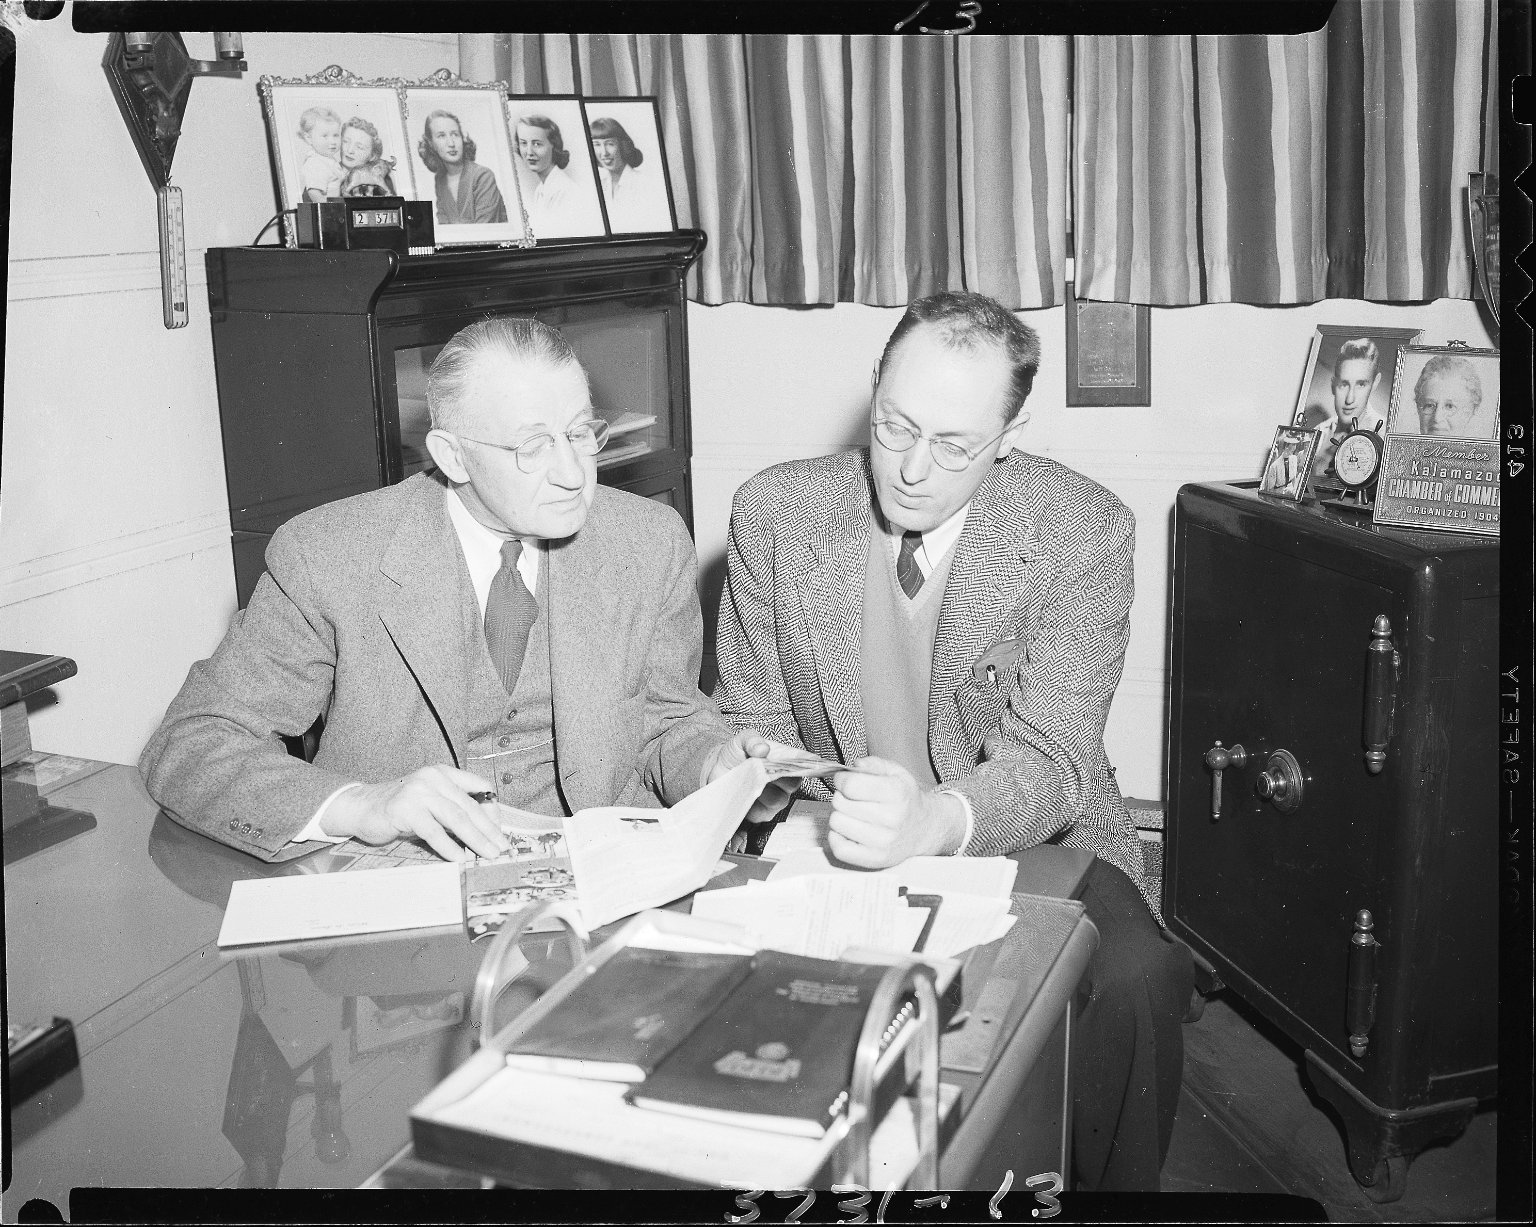 John P. Koester Company, men working together in an office